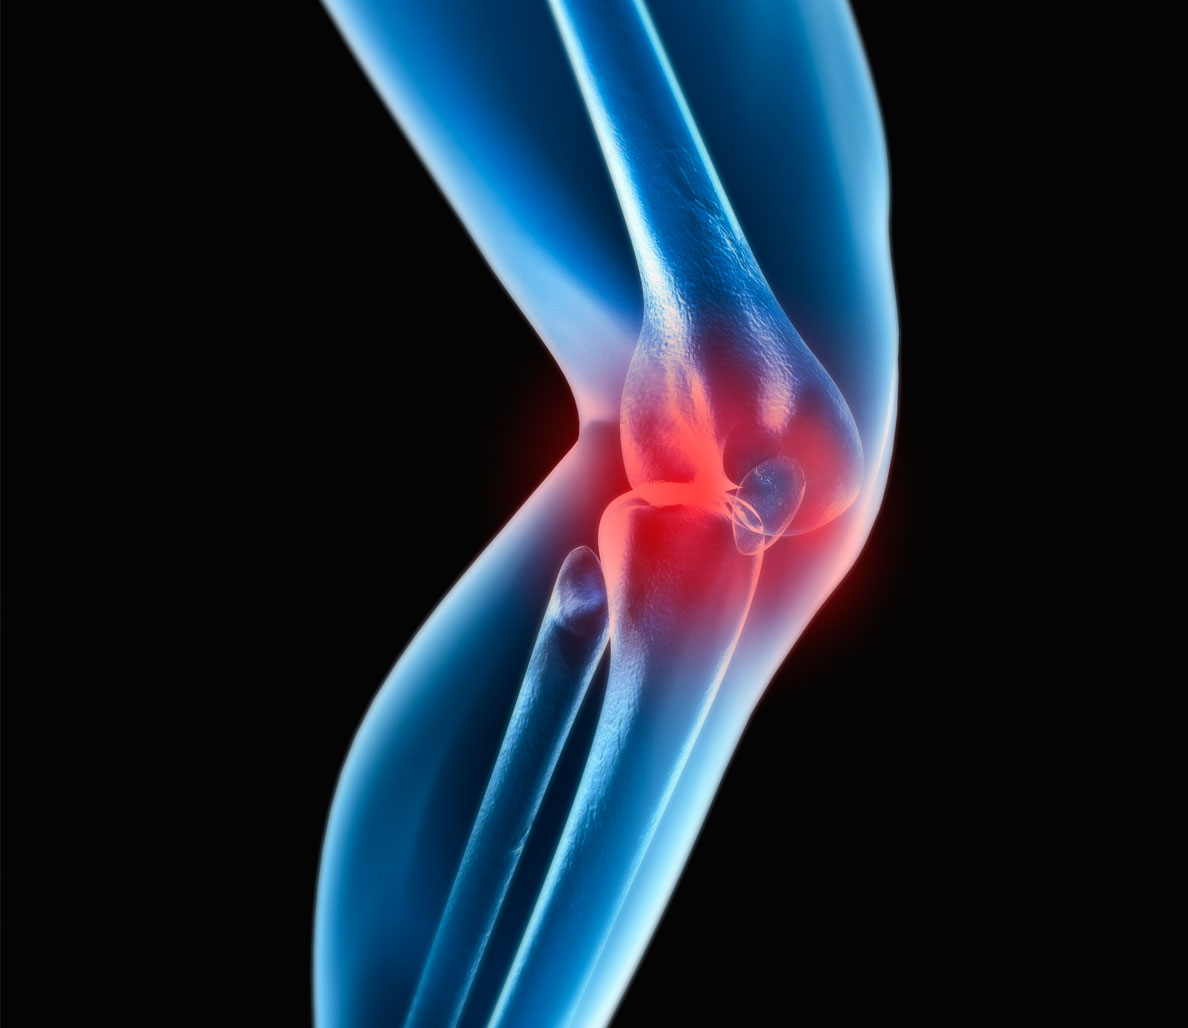 Trainer Q&A: Why Does My Knee Crack and Pop?